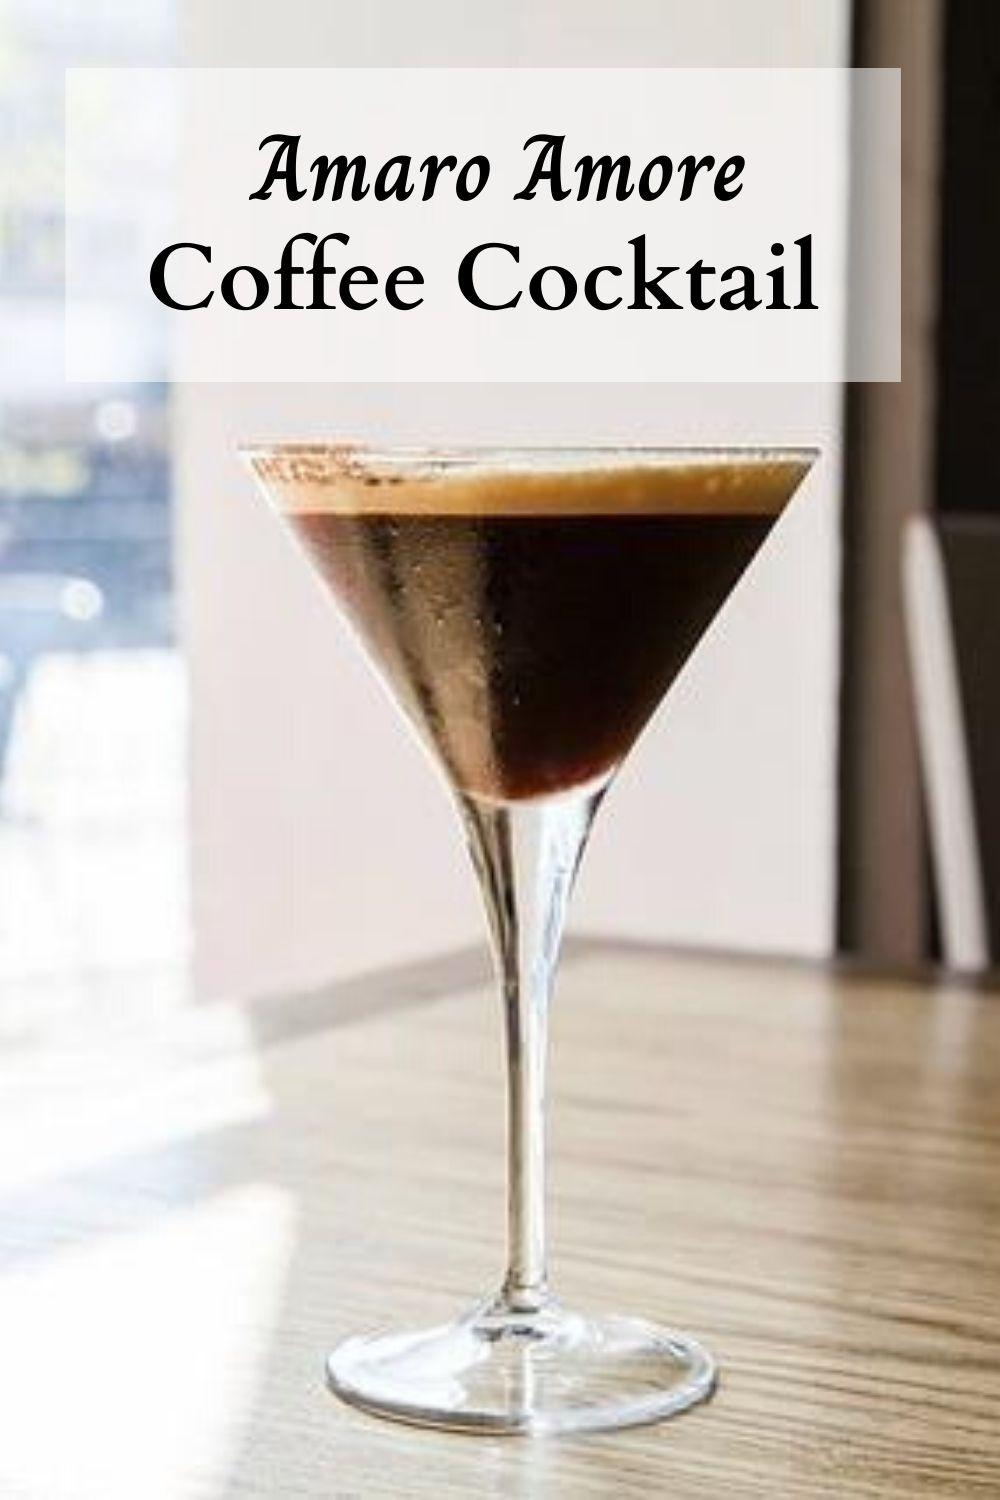 Amaro Amore Coffee Cocktail